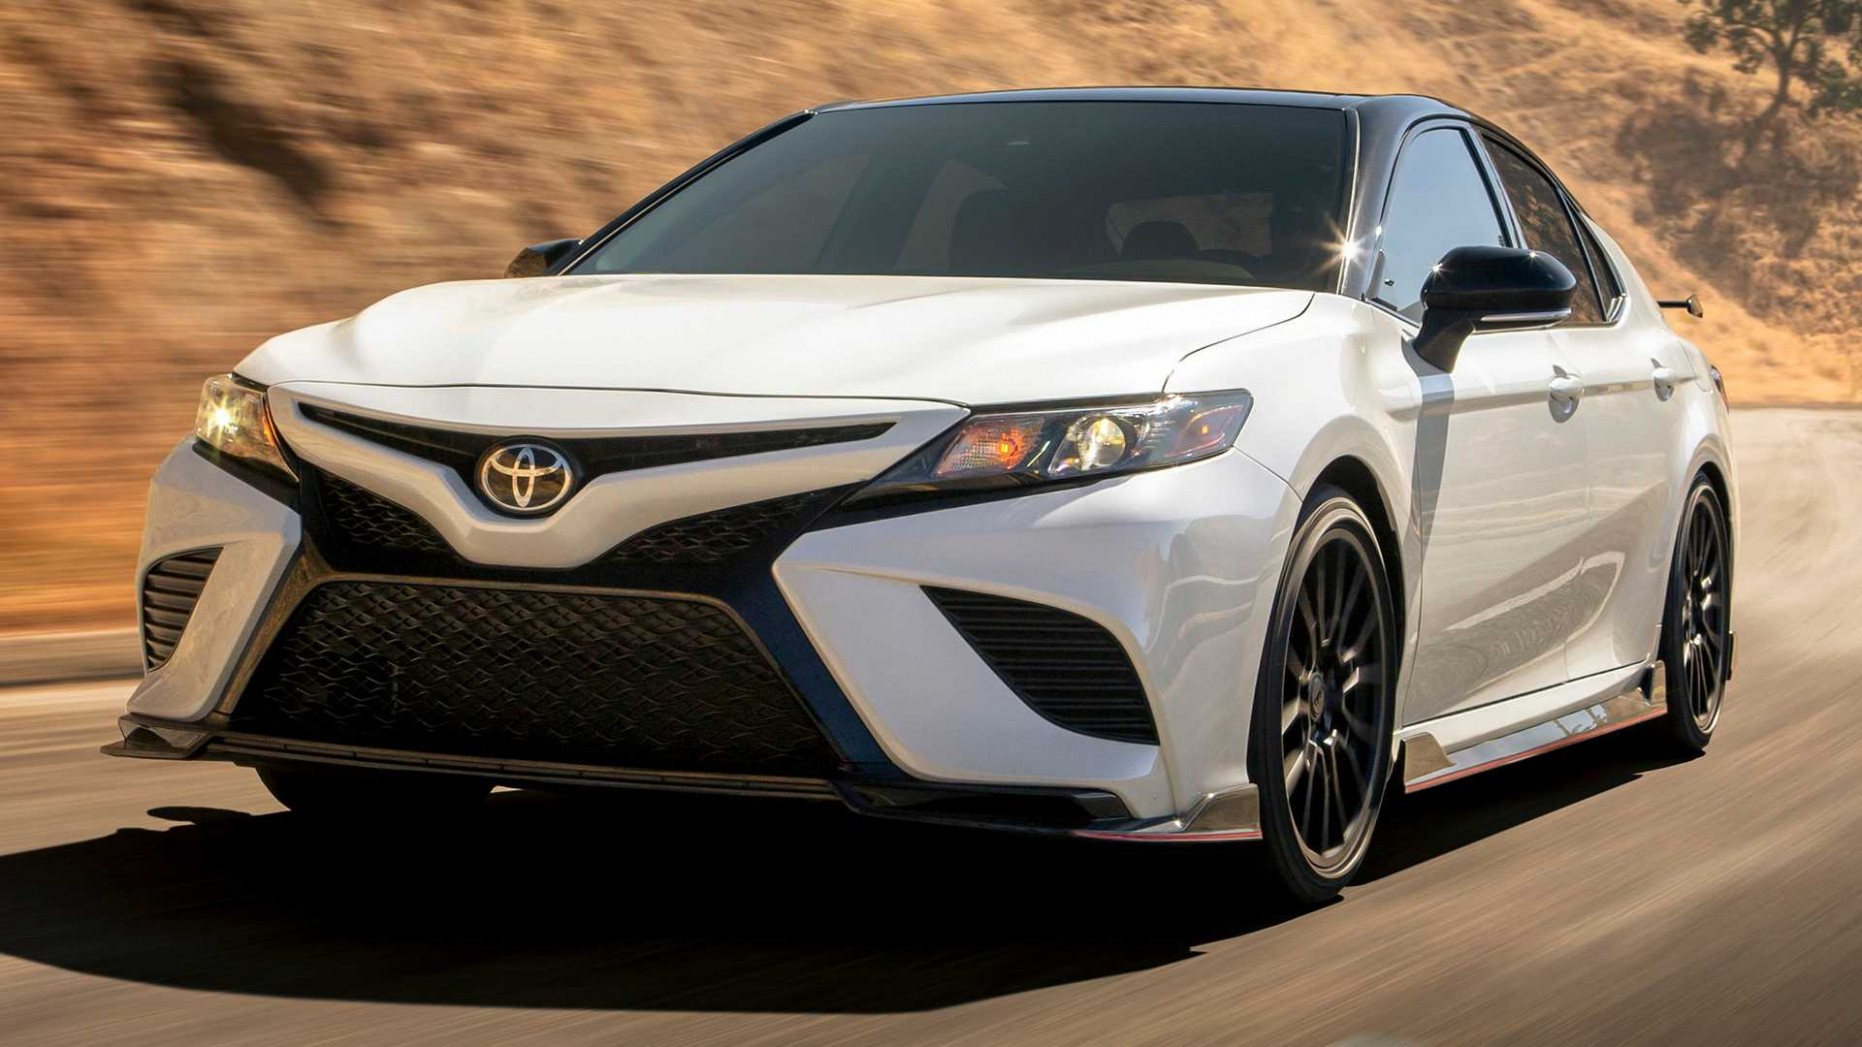 11 Toyota Camry TRD Costs $11,11, It's The Cheapest Camry V11